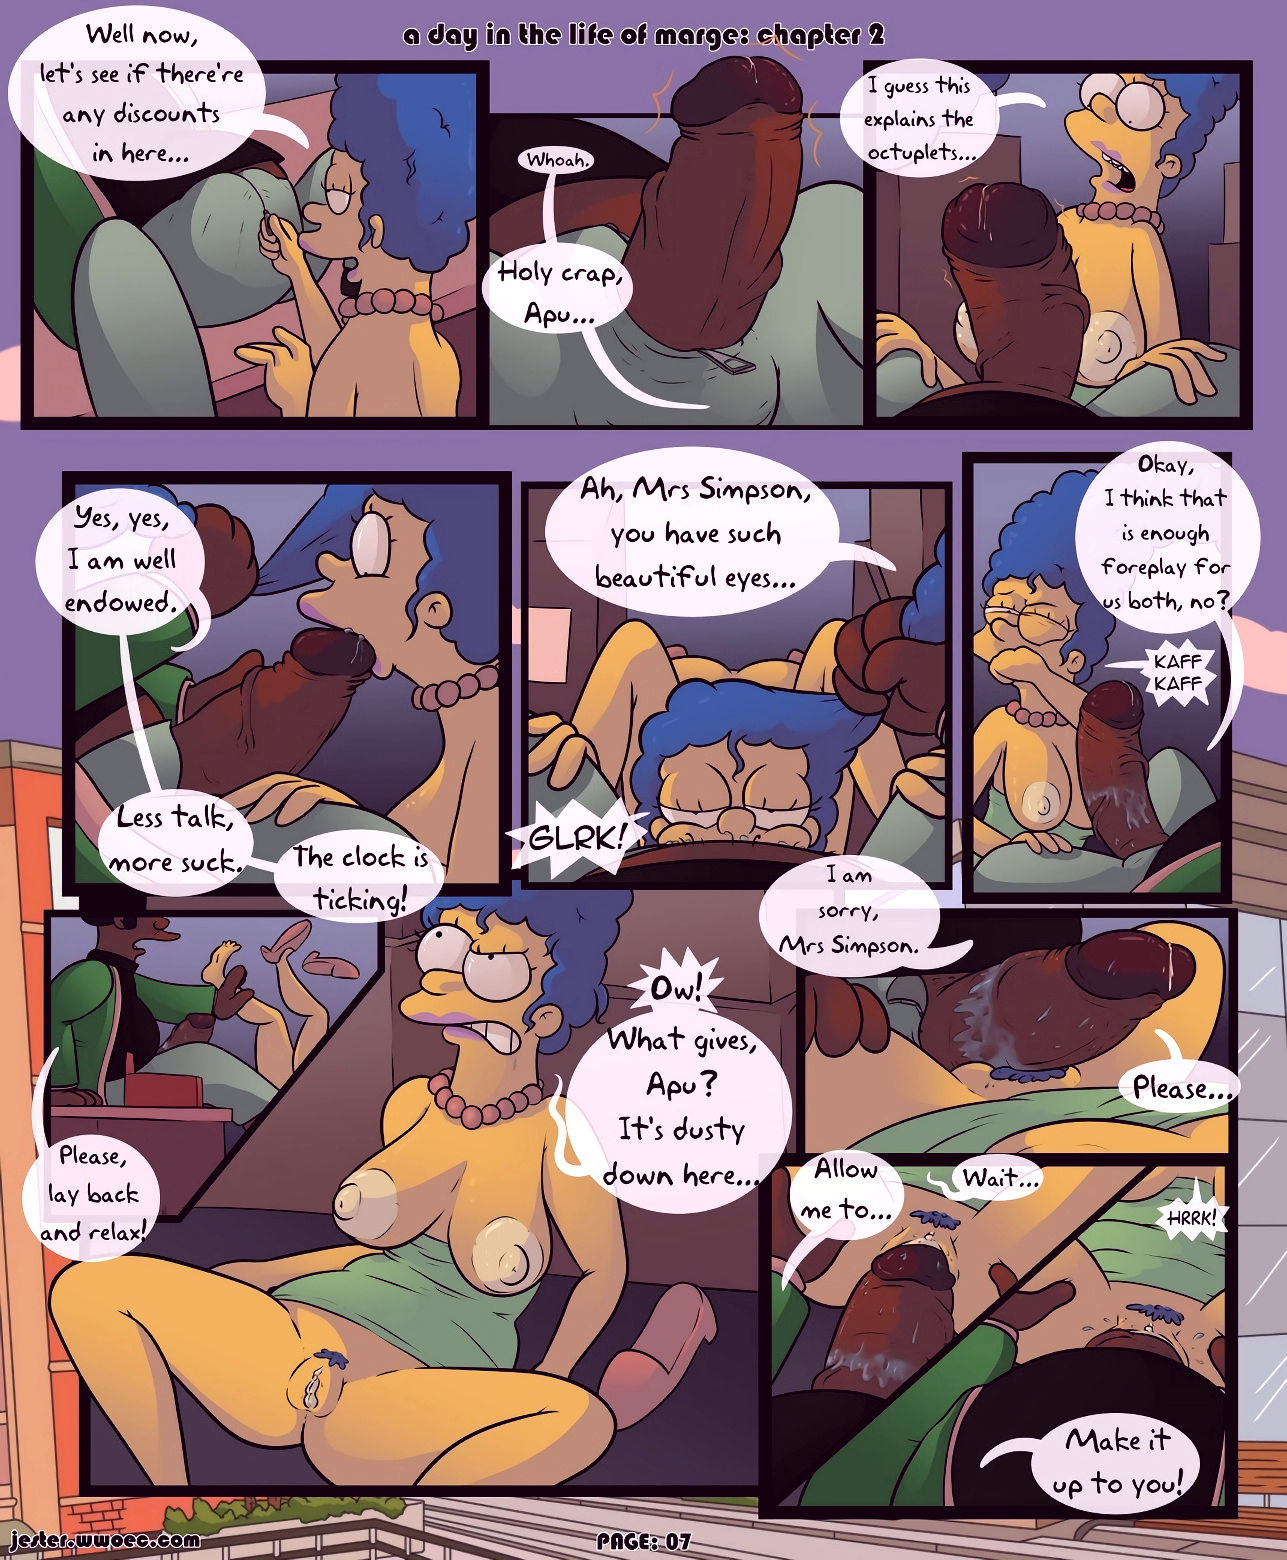 A day in the life of marge 2 porn comic picture 07